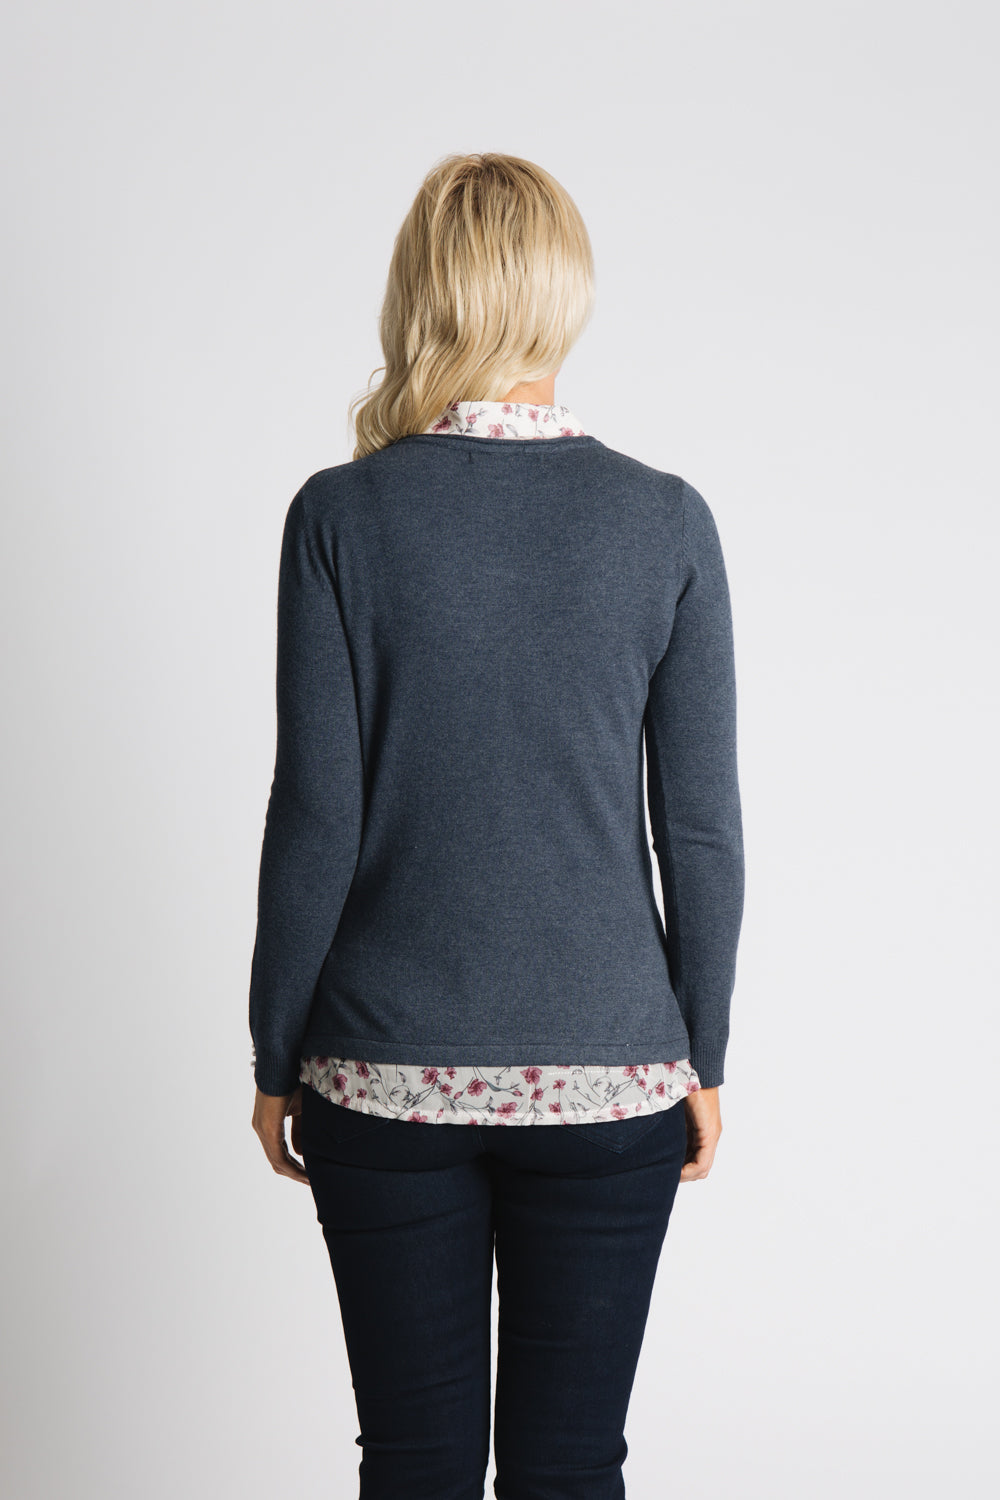 Sweater with printed chiffon collar and tail